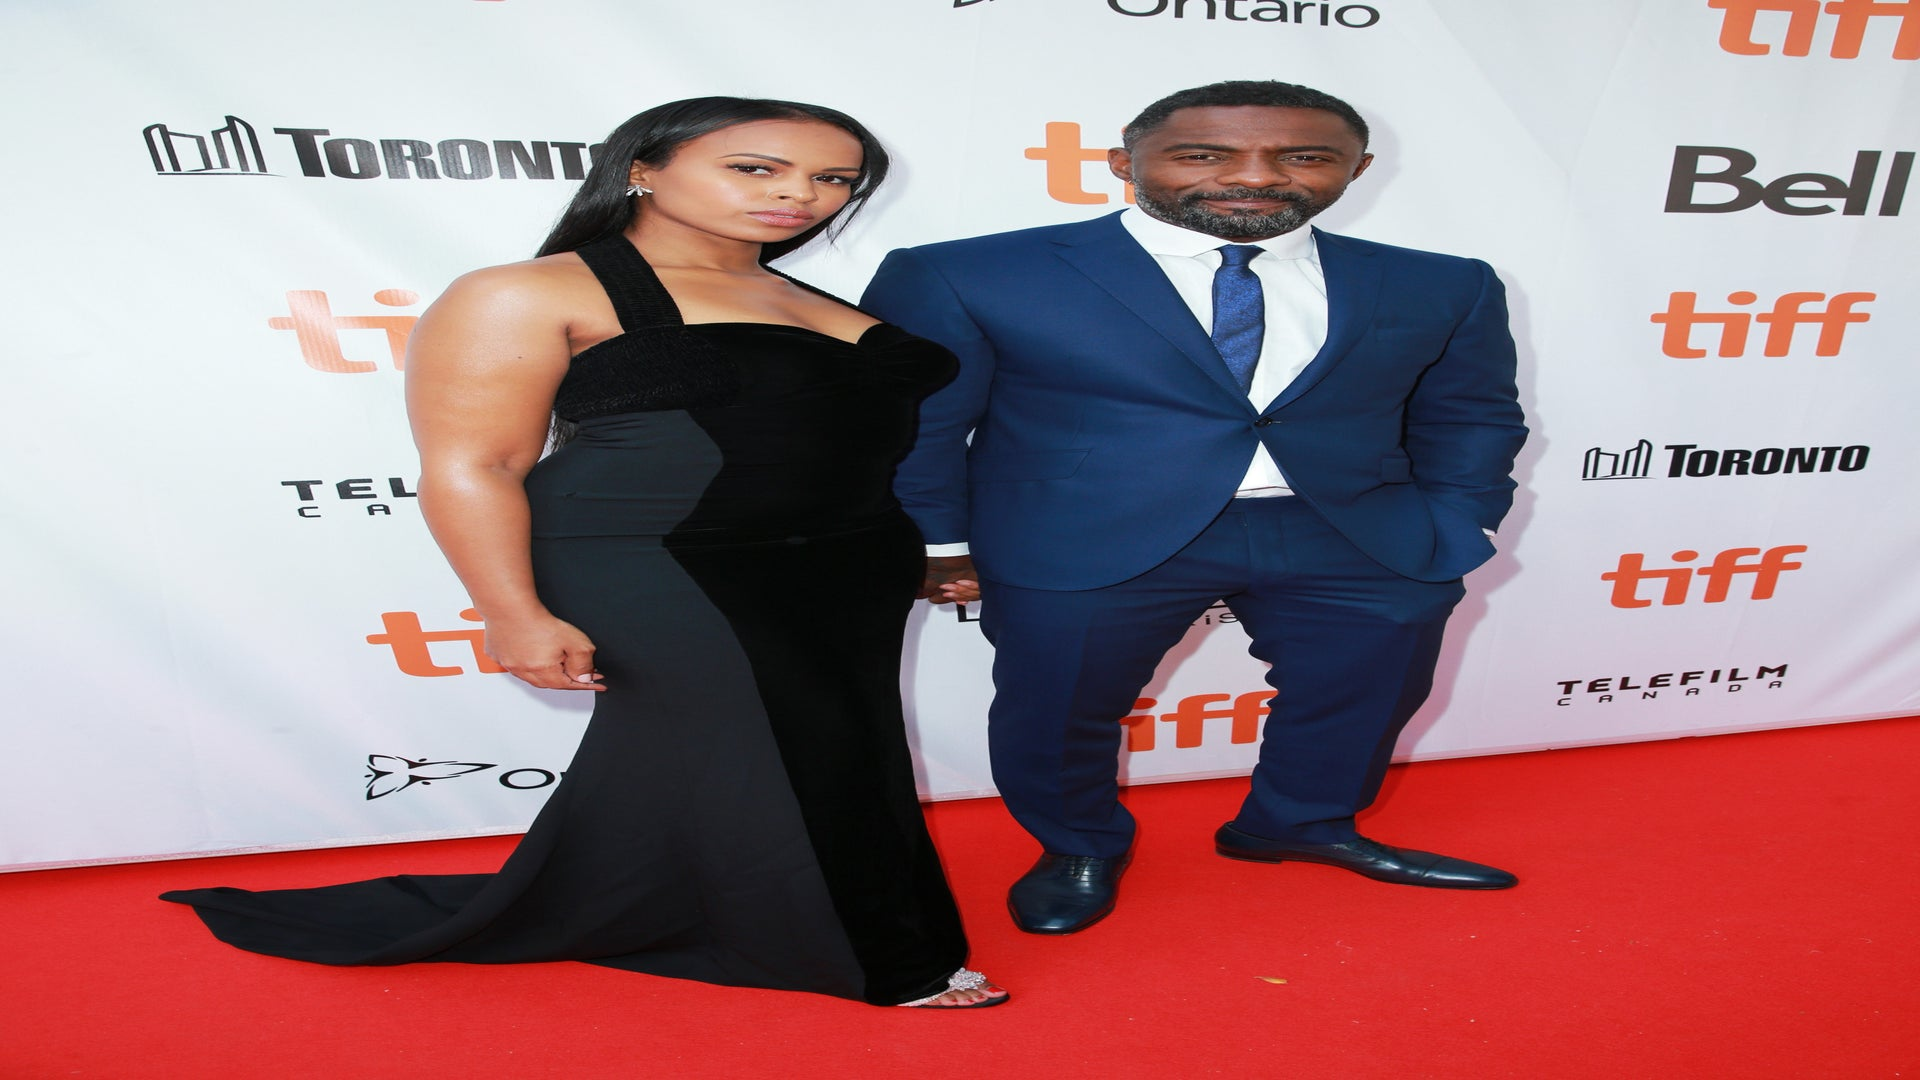 Idris Elba Hits Toronto Red Carpet With 'Beautiful' New Girlfriend Sabrina Dhowre–A Former Miss Vancouver!